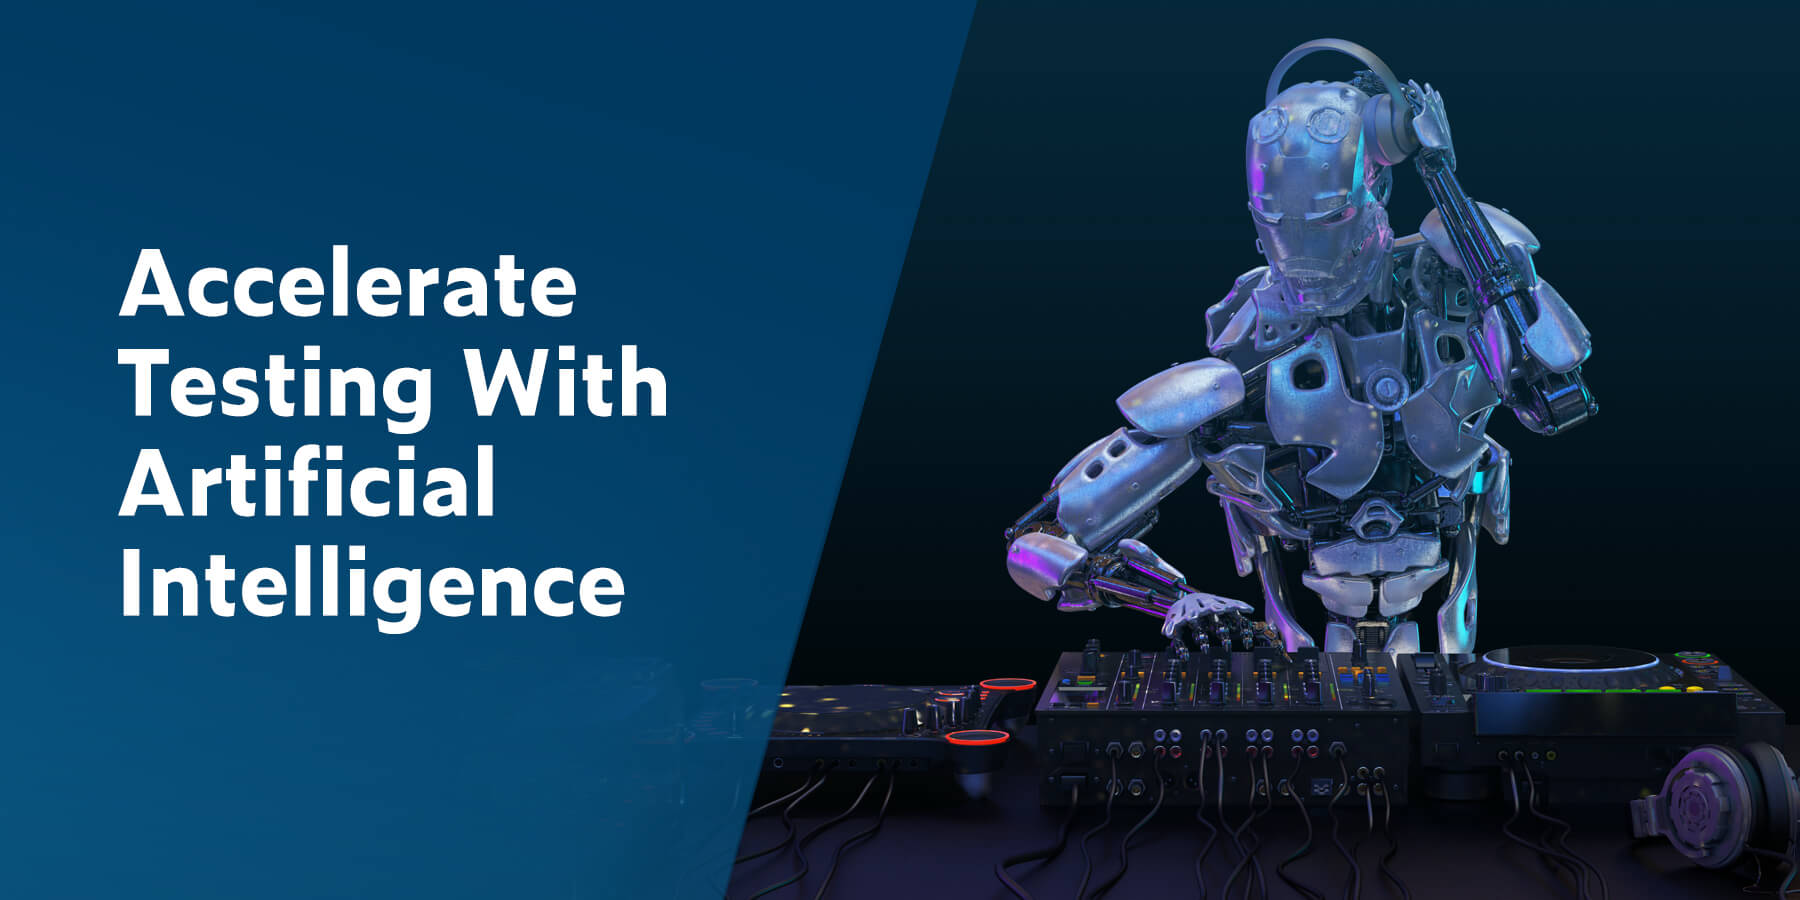 Accelerate Testing With Artificial Intelligence